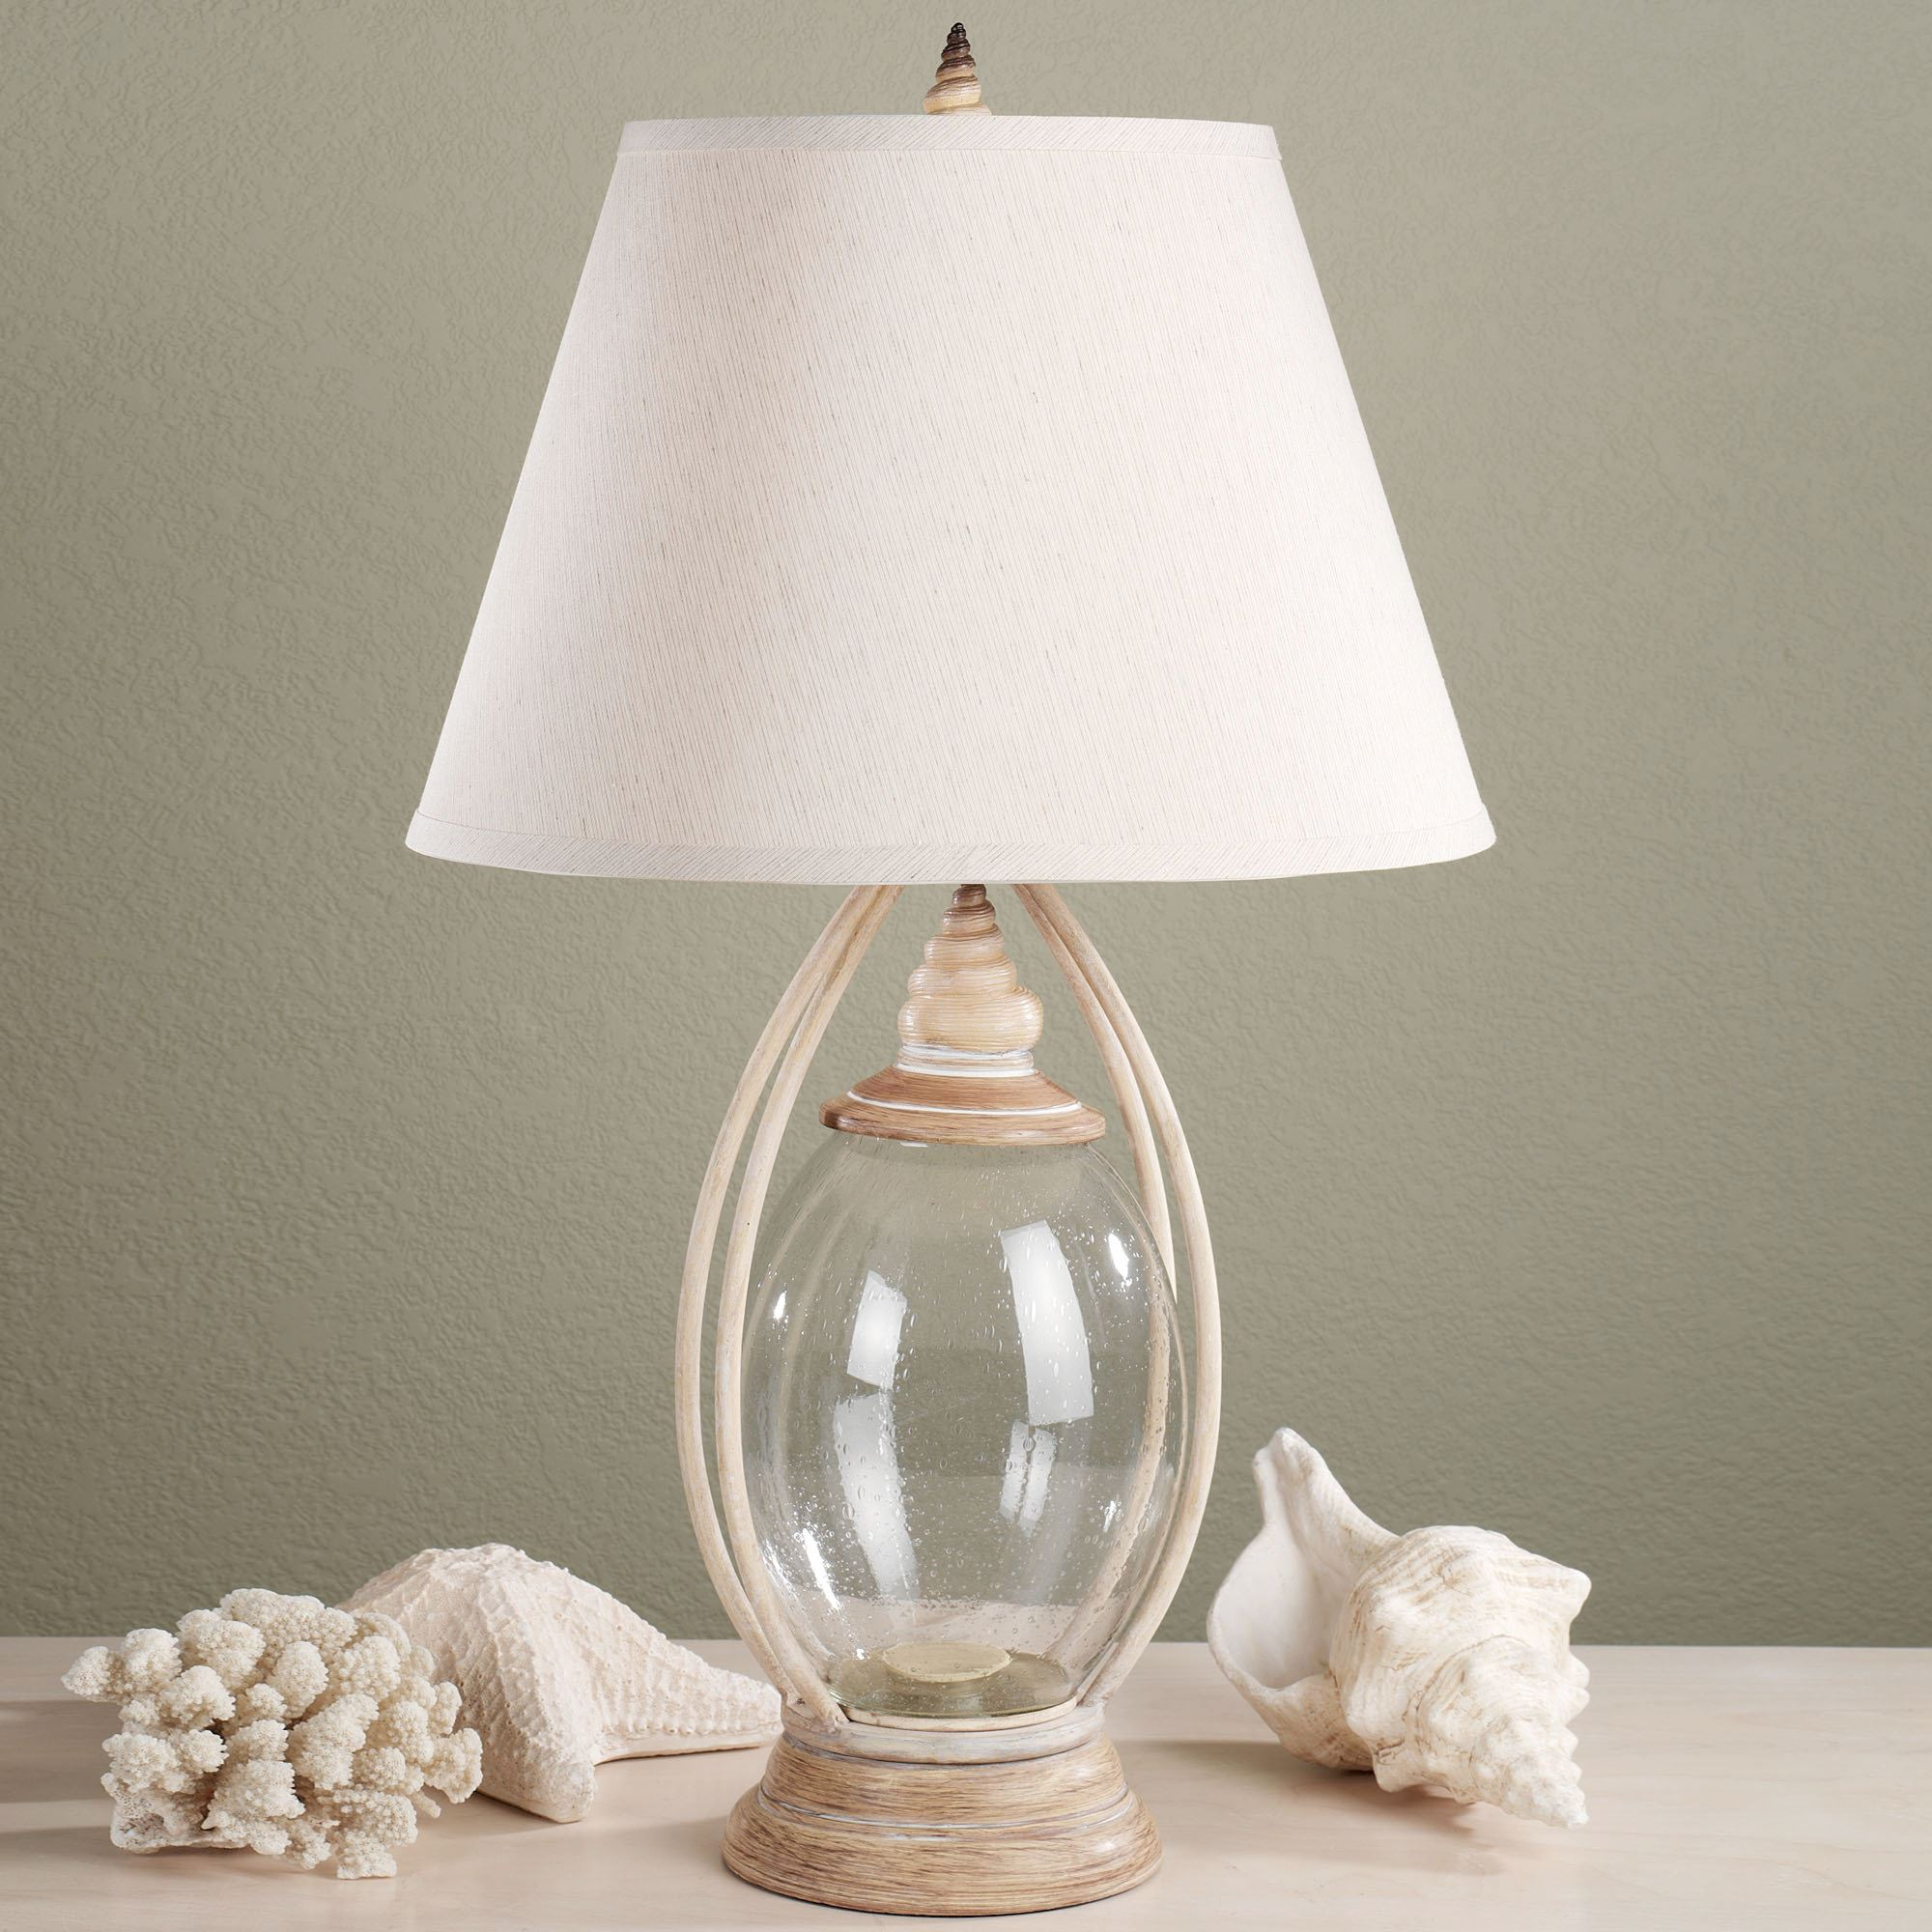 lamp seashell table lamps nautical sets sea glass lava lighting coastal ceiling lights accent bedroom antique ship for full size egg chair bunnings country kitchen crate and